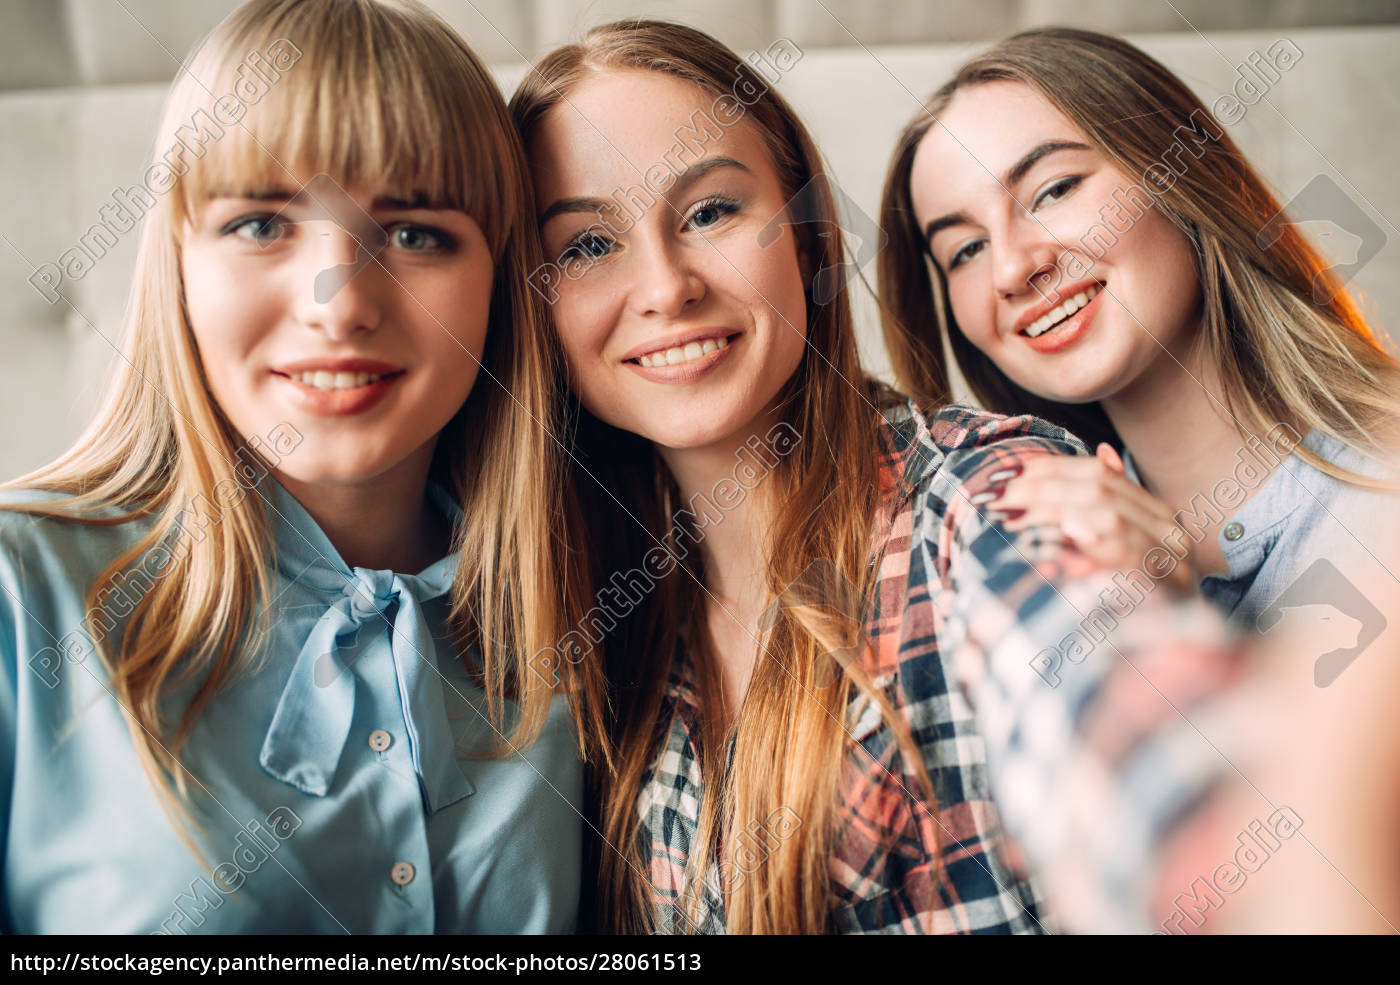 portrait, of, three, young, smiling, girlfriends - 28061513